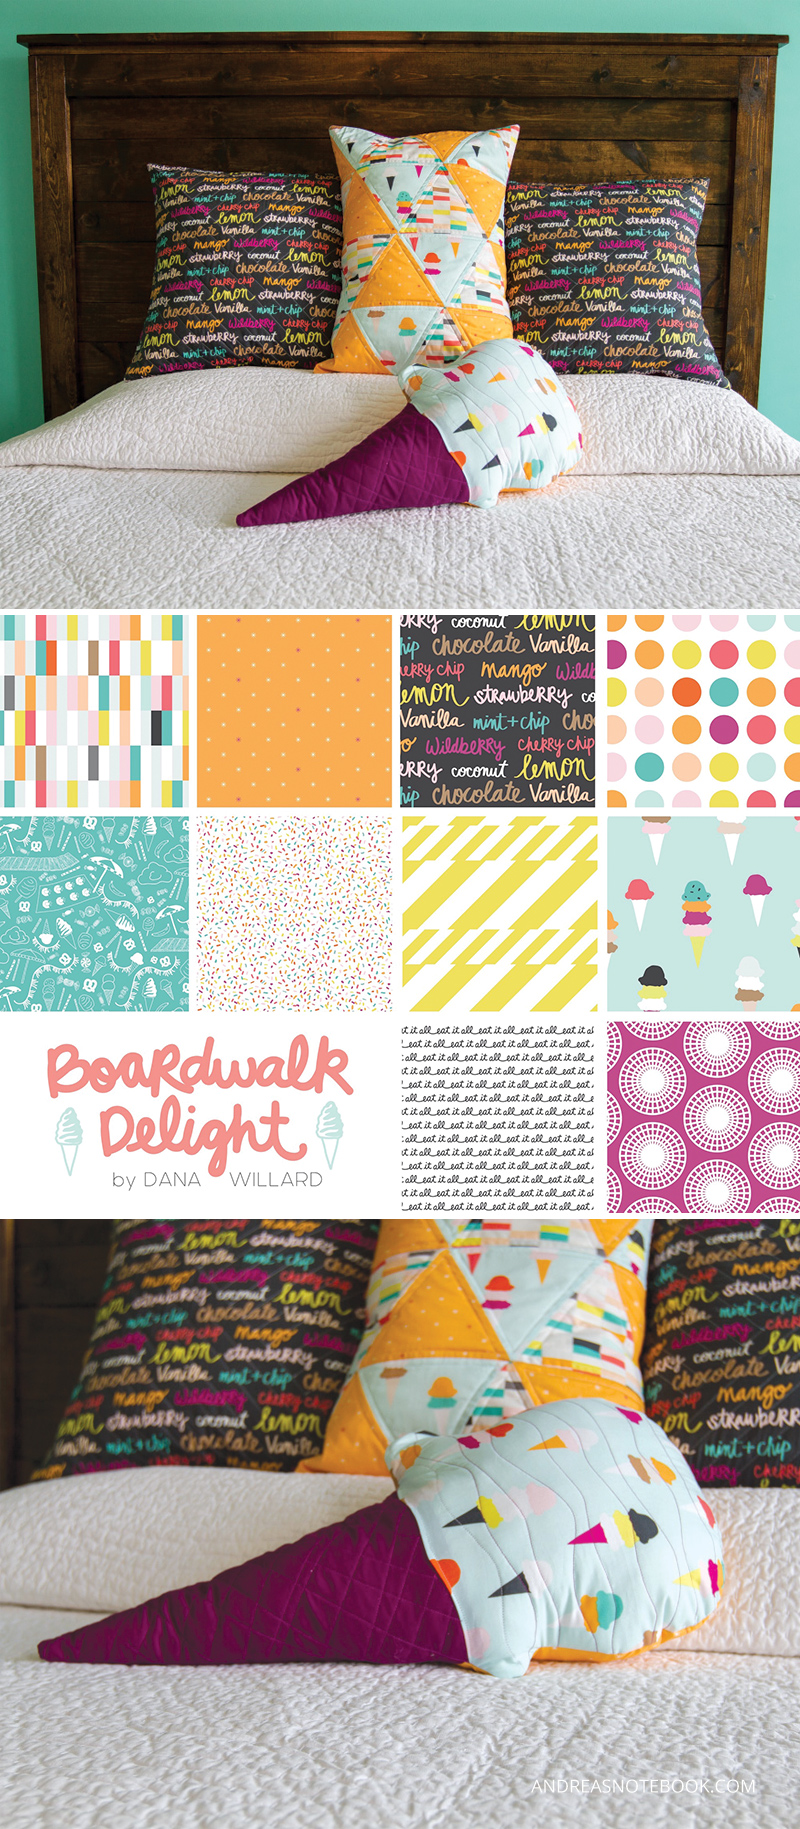 DIY quilted pillows - andreasnotebook.com - Boardwalk Delight fabric